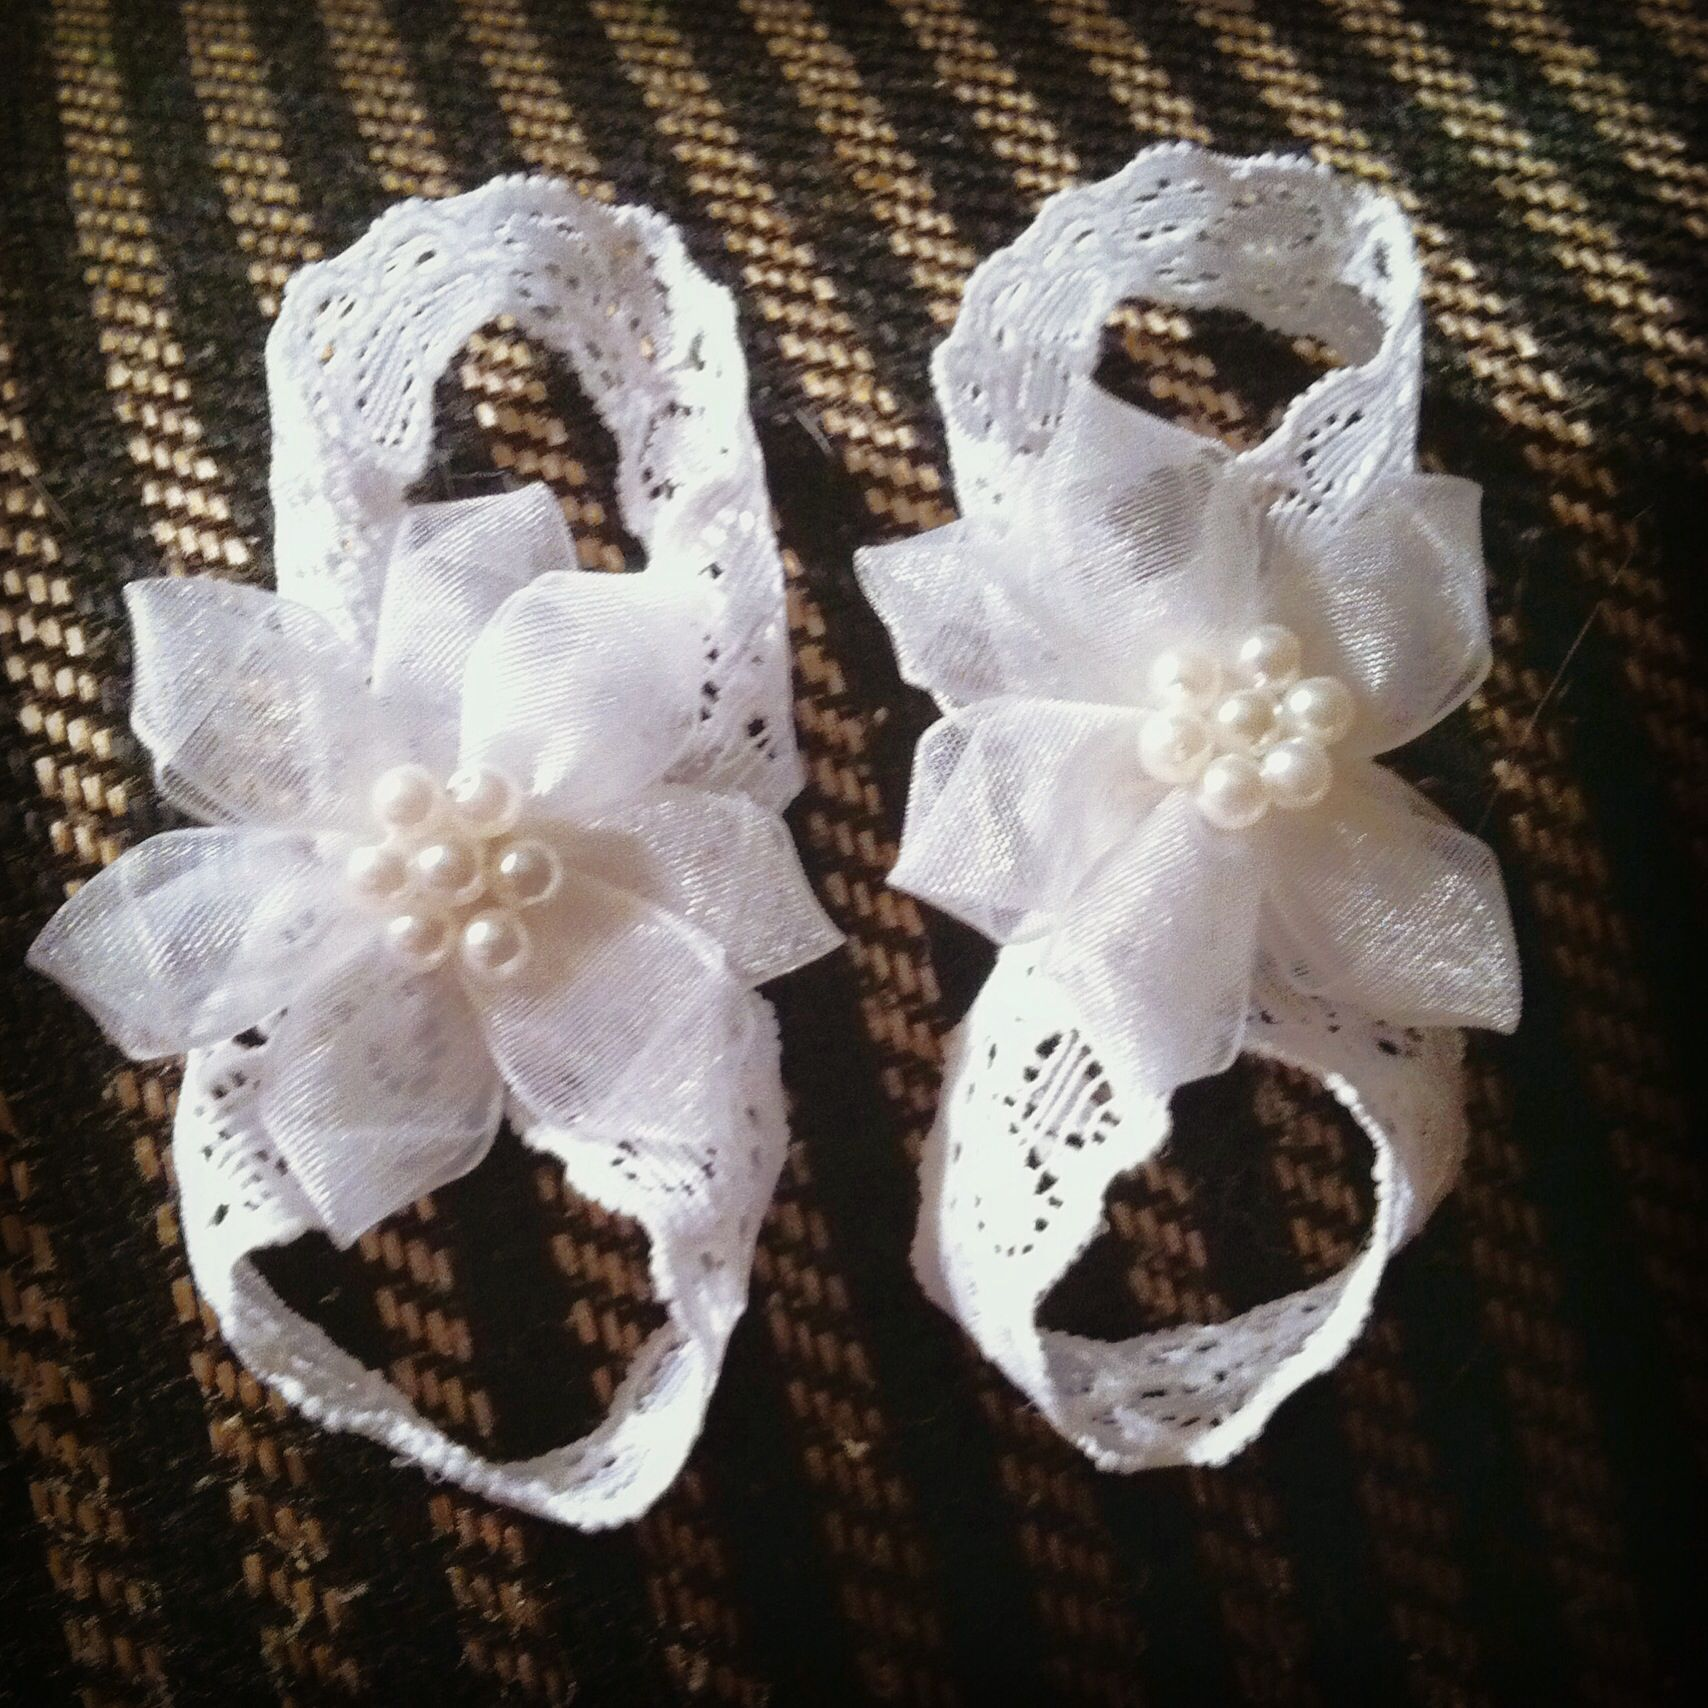 Baby shoes diy, Barefoot sandals baby